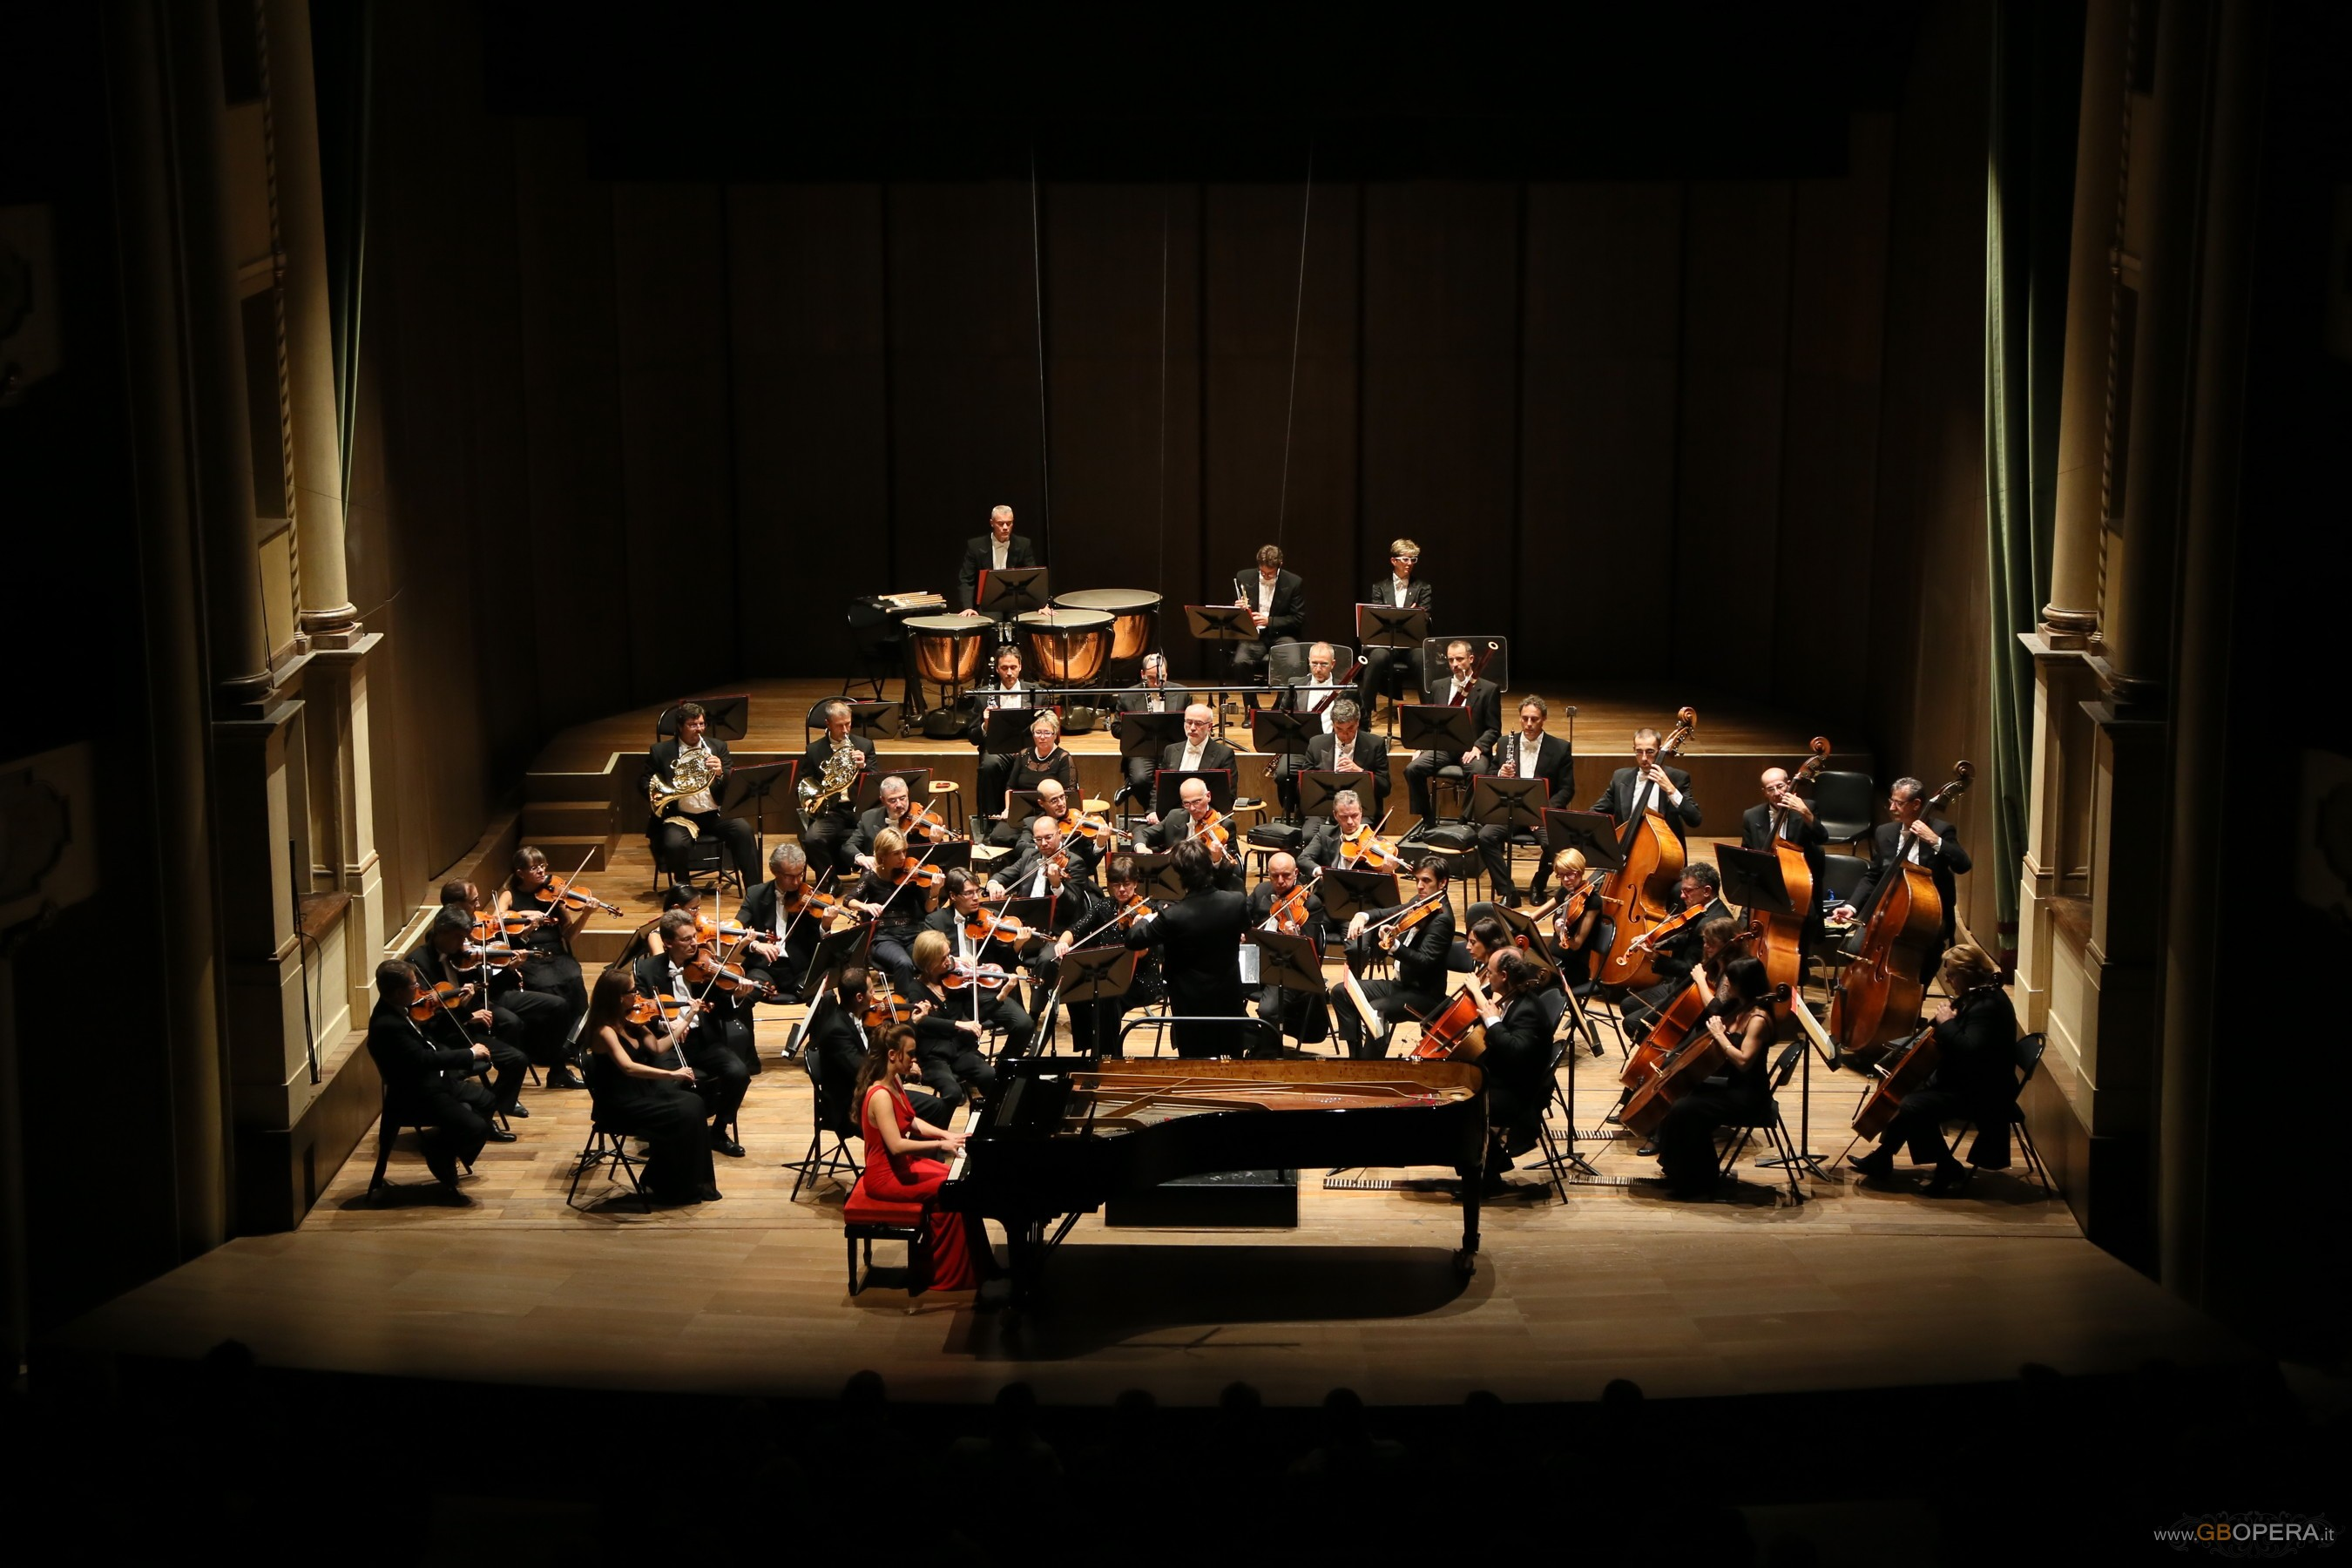 Beethoven and Mozart for the Second Concert of the Symphonic Season in Verona